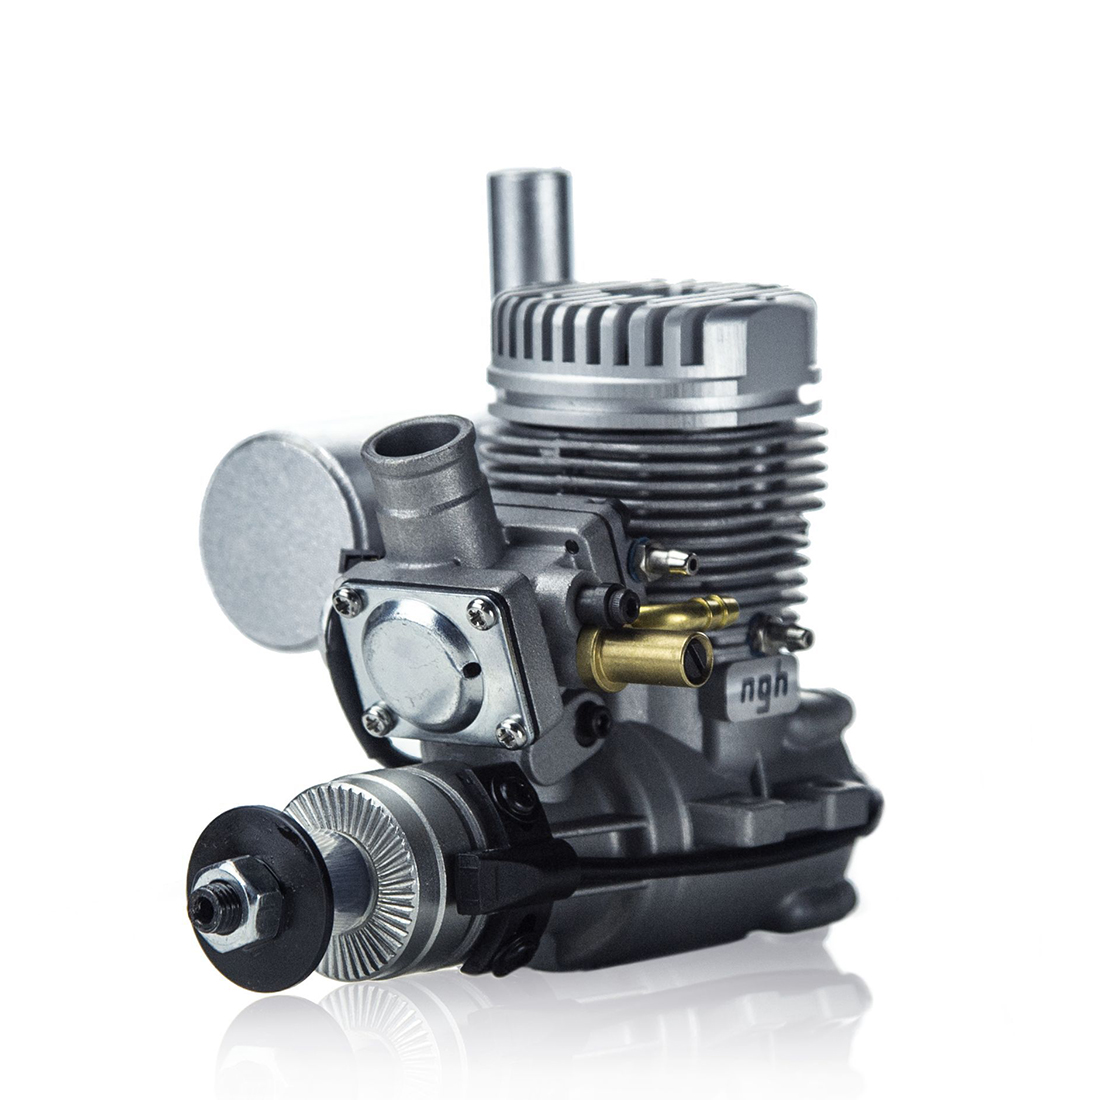 Ngh GT9pro 9cc Single-cylinder Two Stroke Air Cooled Gasoline Engine For Fixed Wing Rotorcraft Aircraft